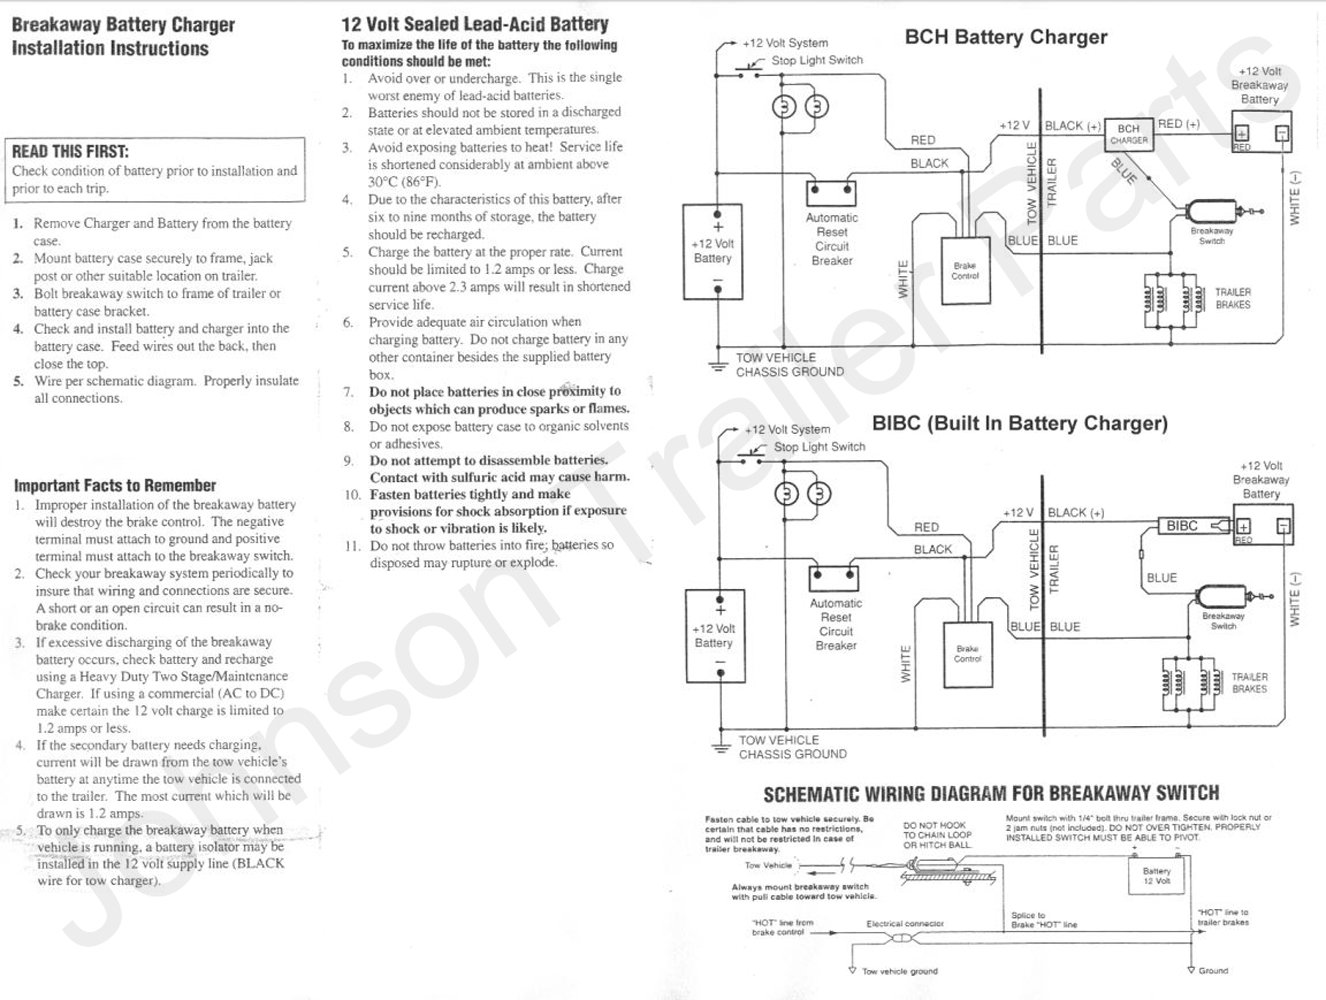 718PvzZr5ZL._SL1326_ amazon com trailer breakaway kit led readout breakaway switch tekonsha breakaway system wiring diagram at reclaimingppi.co